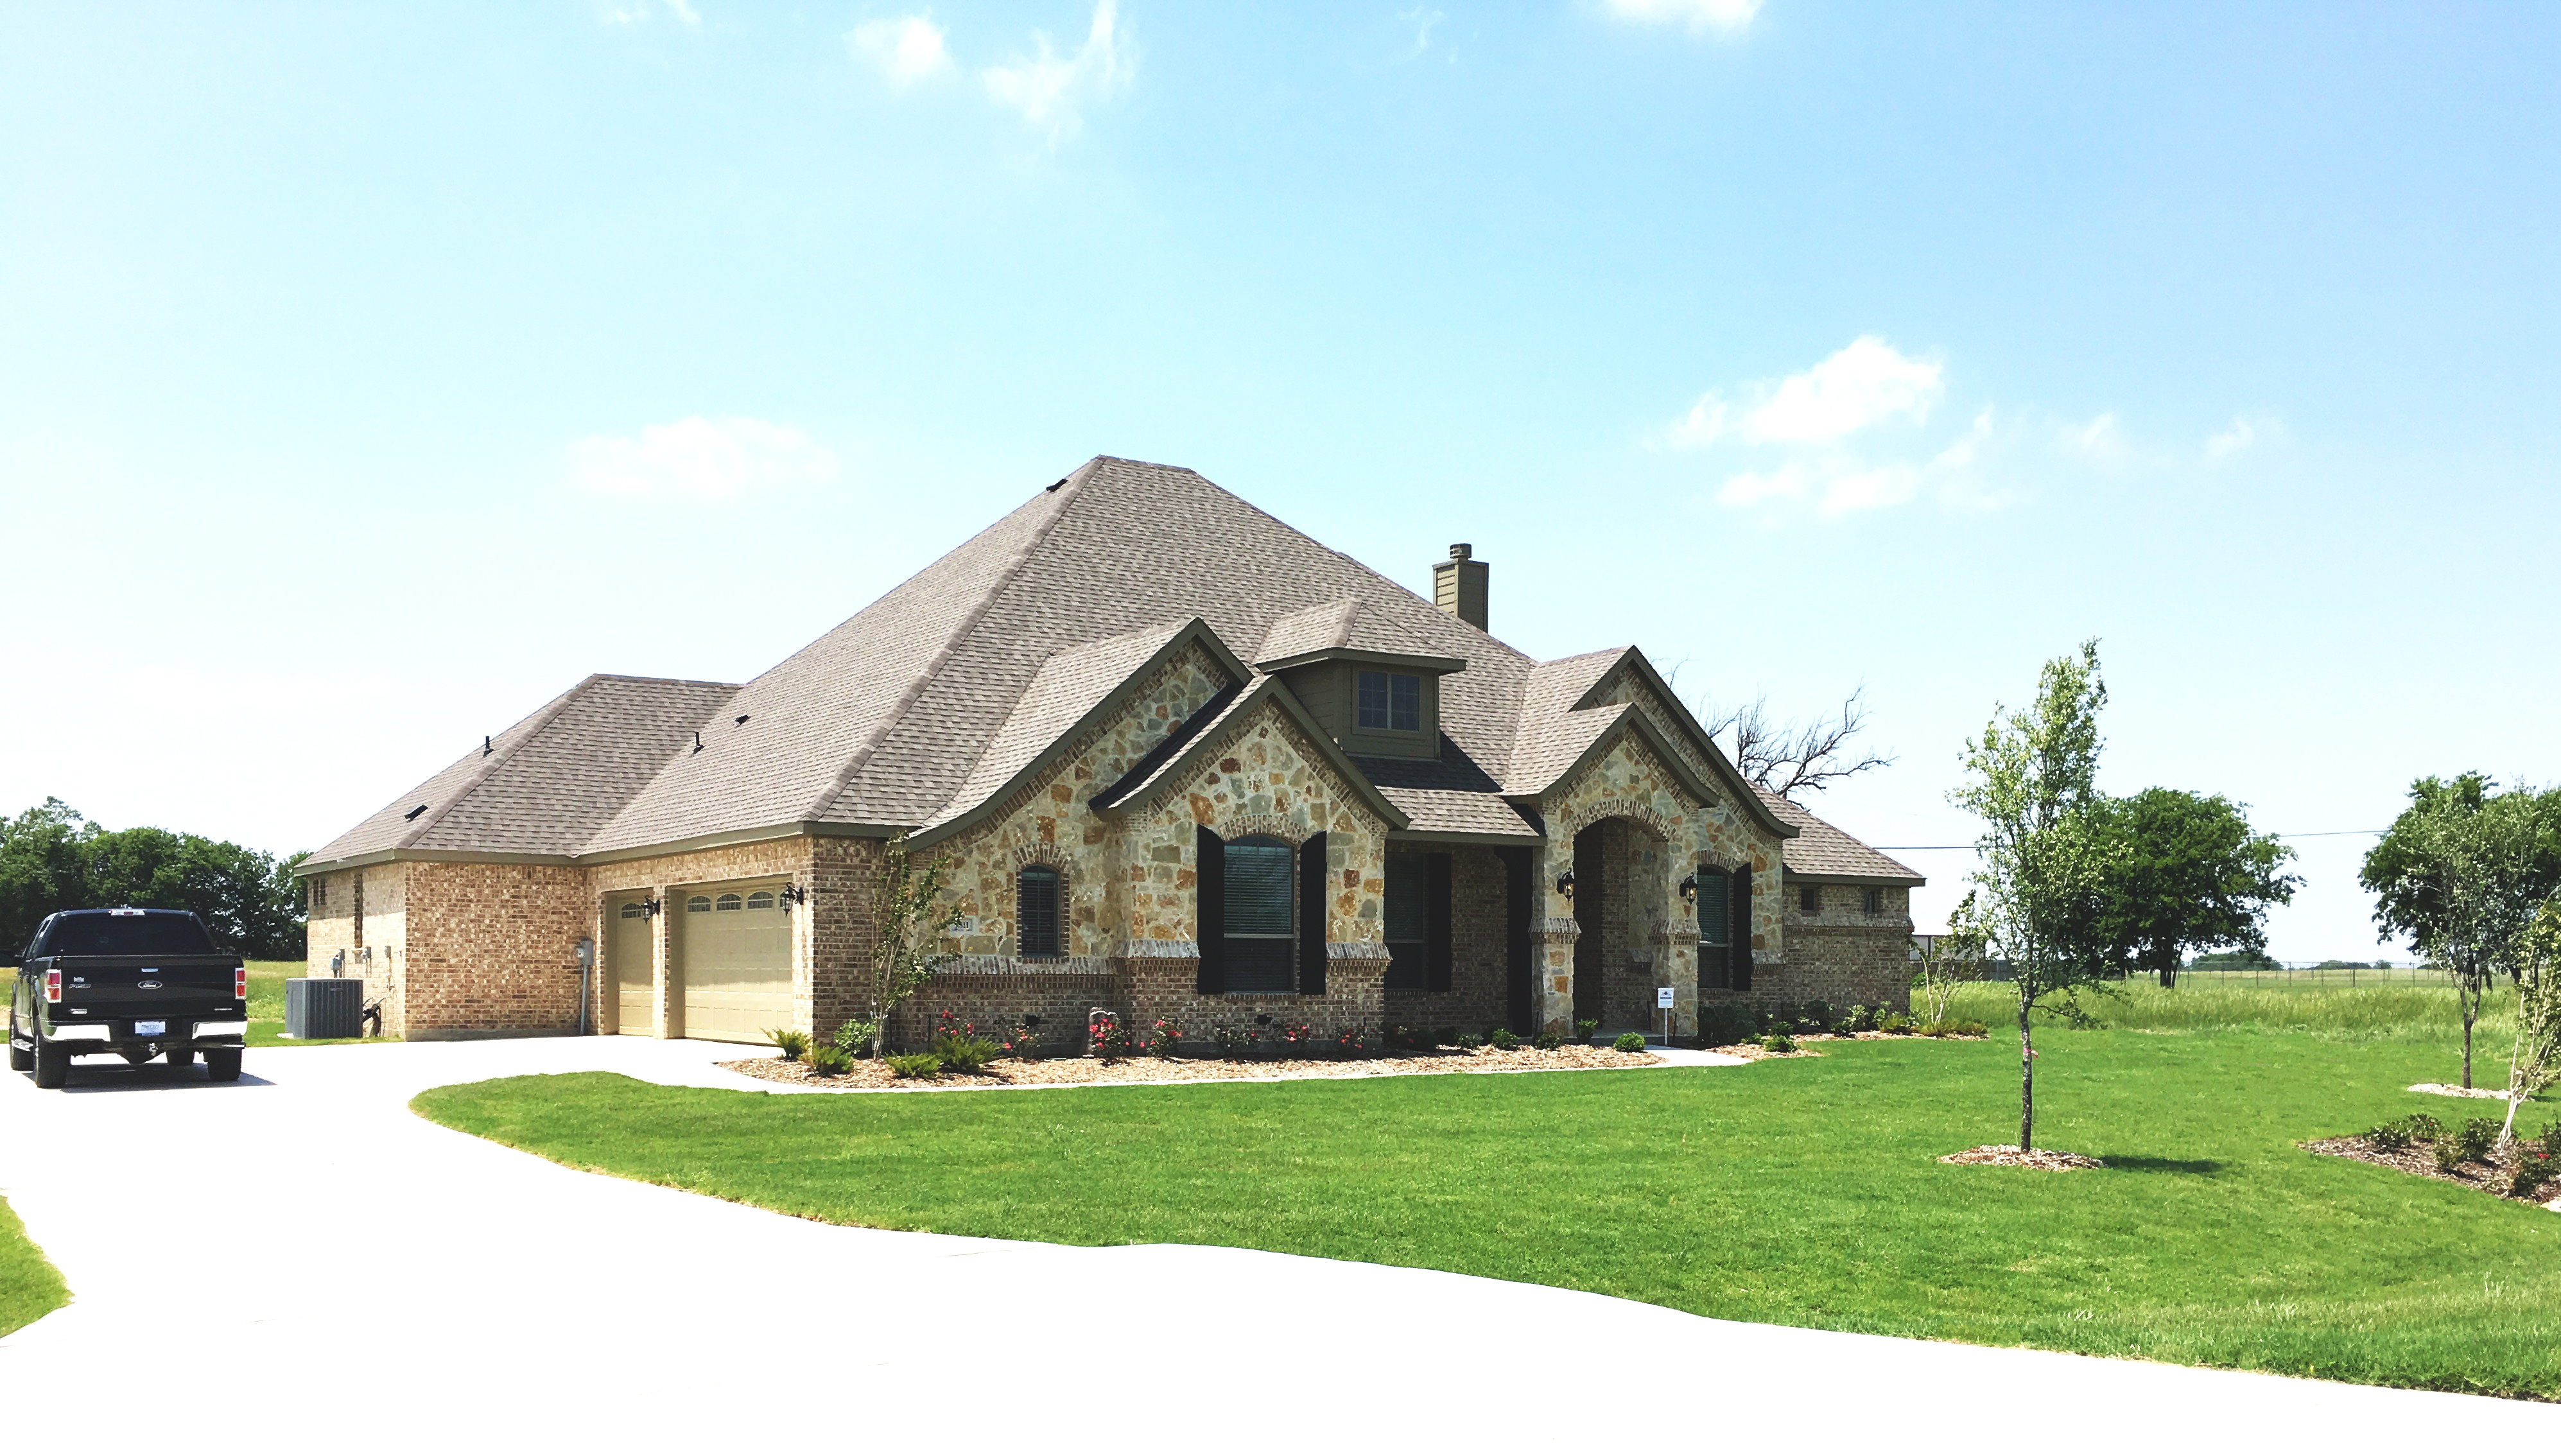 new homes for sale midlothian tx mcalpin manor 1 acre